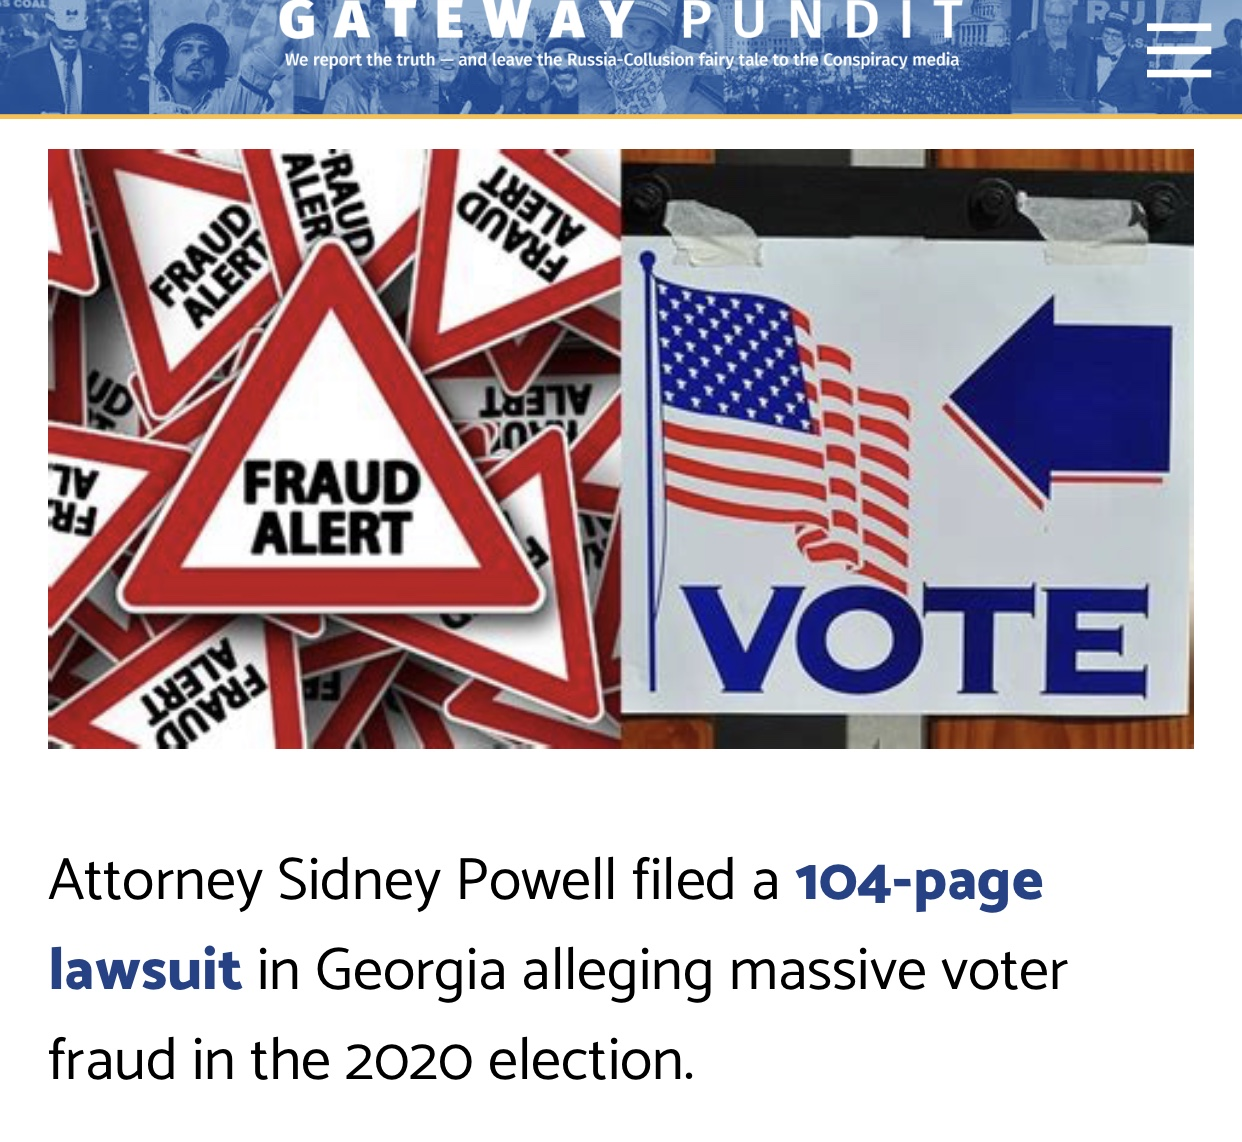 Georgia Lawsuit: Witness Testifies About Use of Different Paper For 'Counterfeit' Ballots, 'Watermark Solid Grey Instead of Transparent' – 100% For Joe Biden